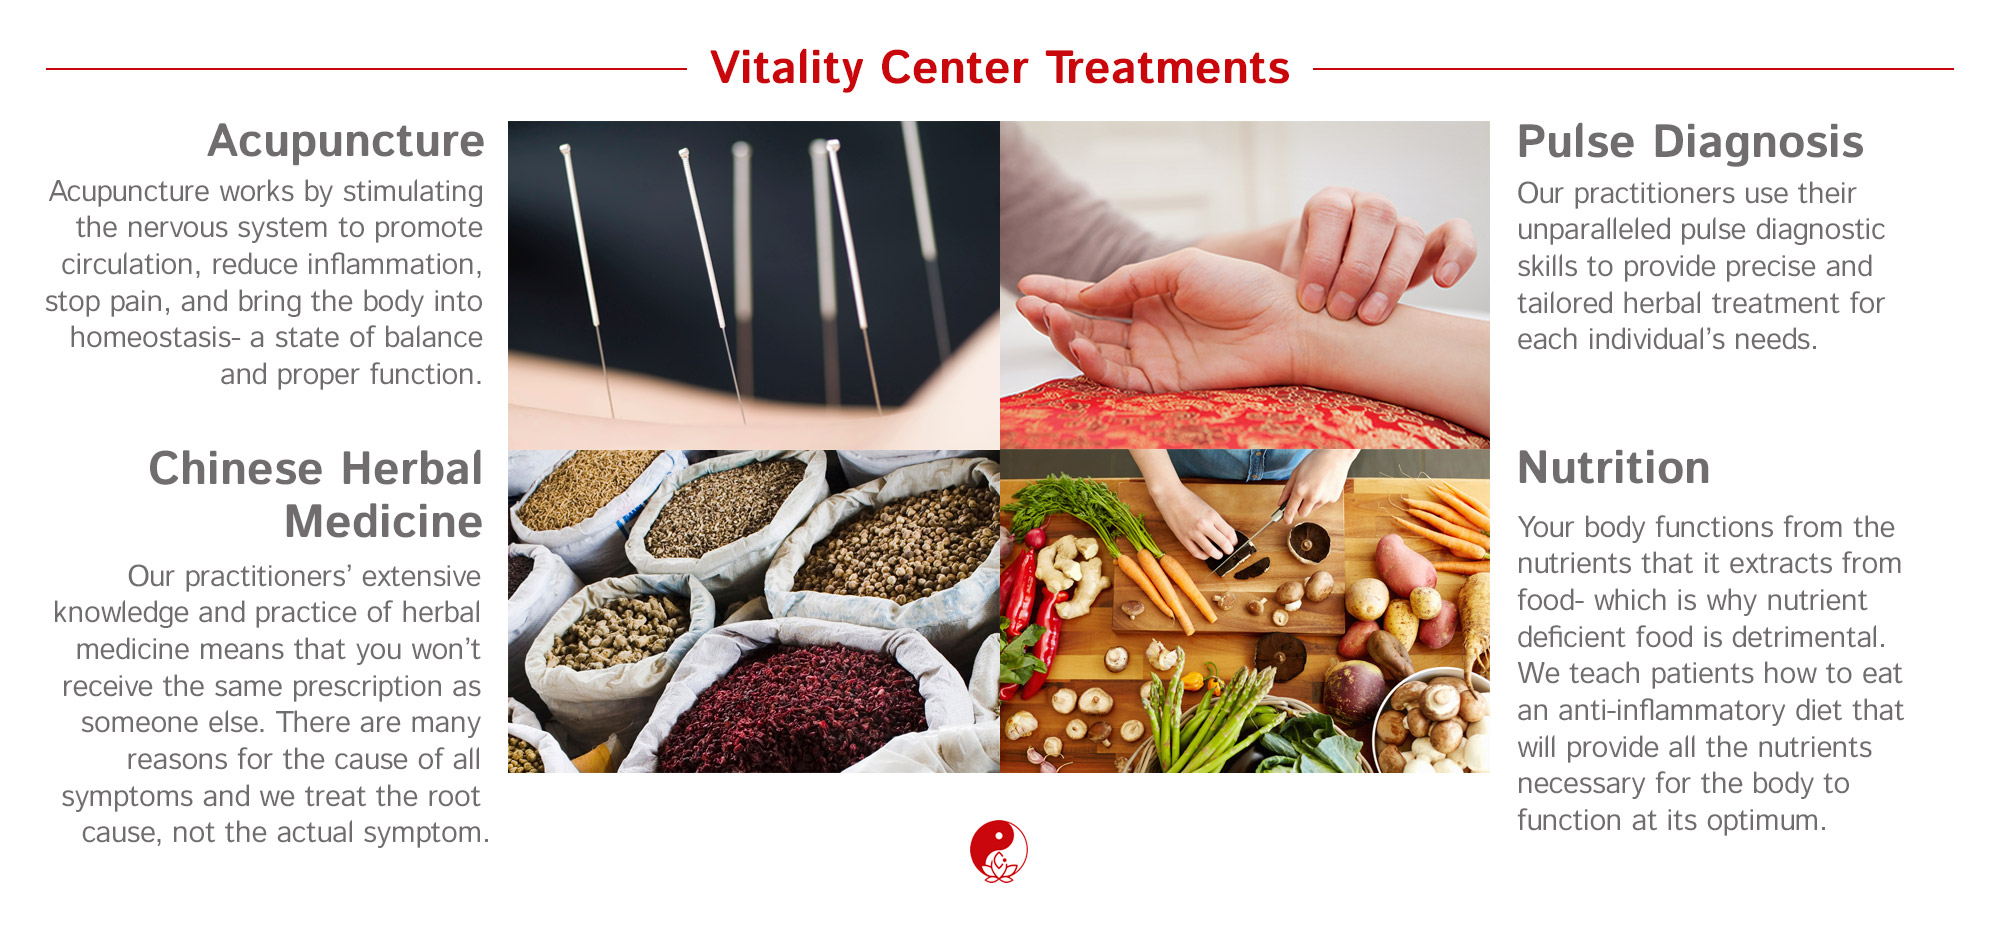 Chinese herbal treatment - Give Us Four Months And We Will Give You Your Life Back